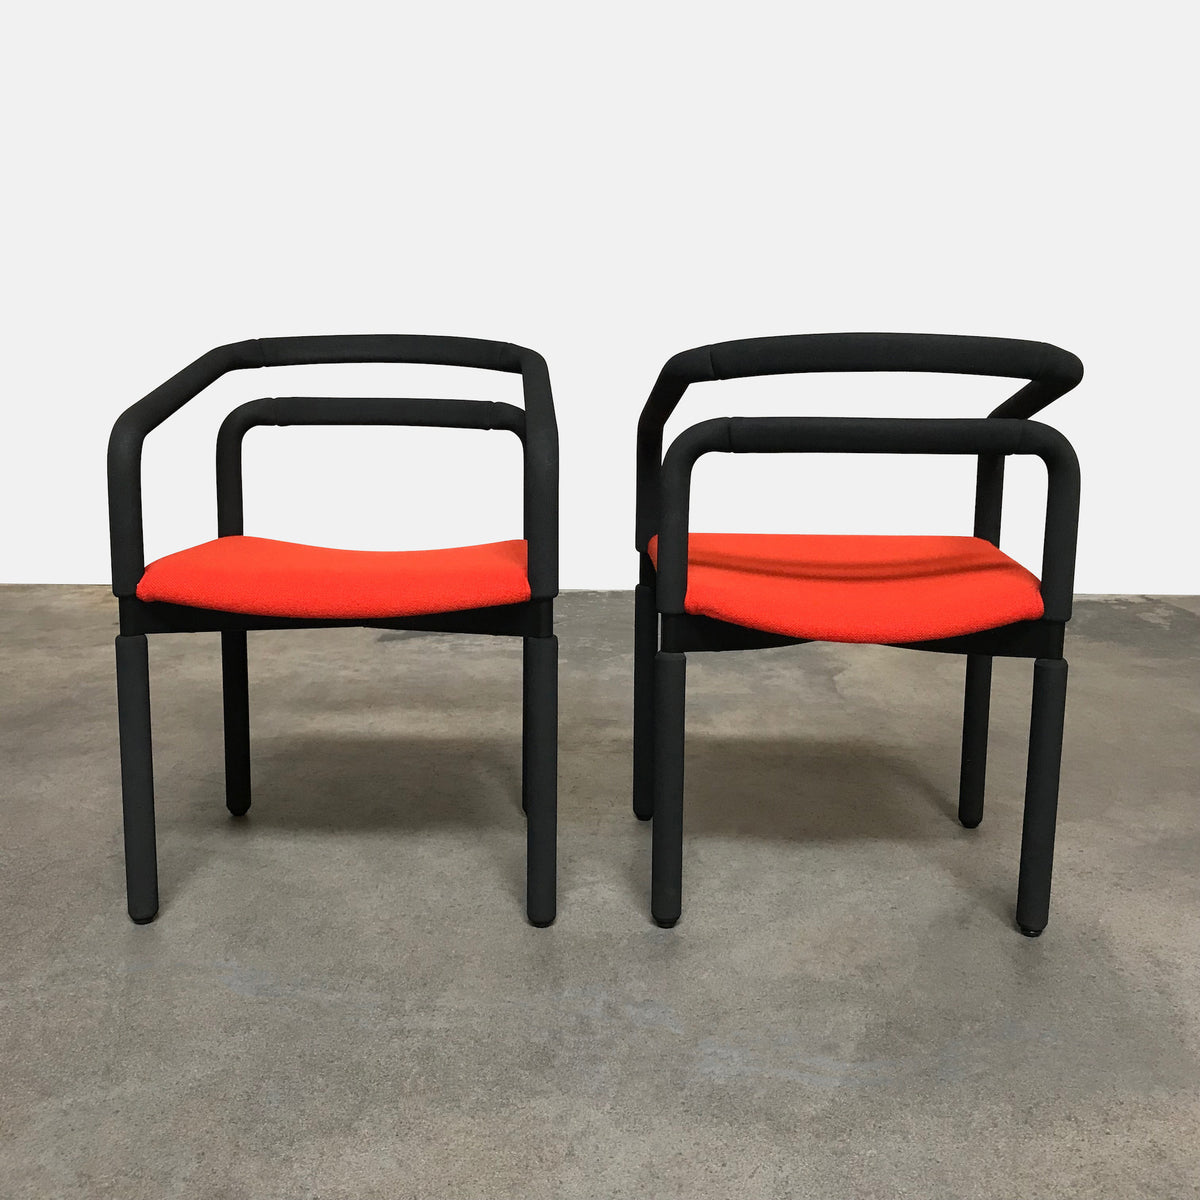 Vintage Rubber Chairs (set of 6)